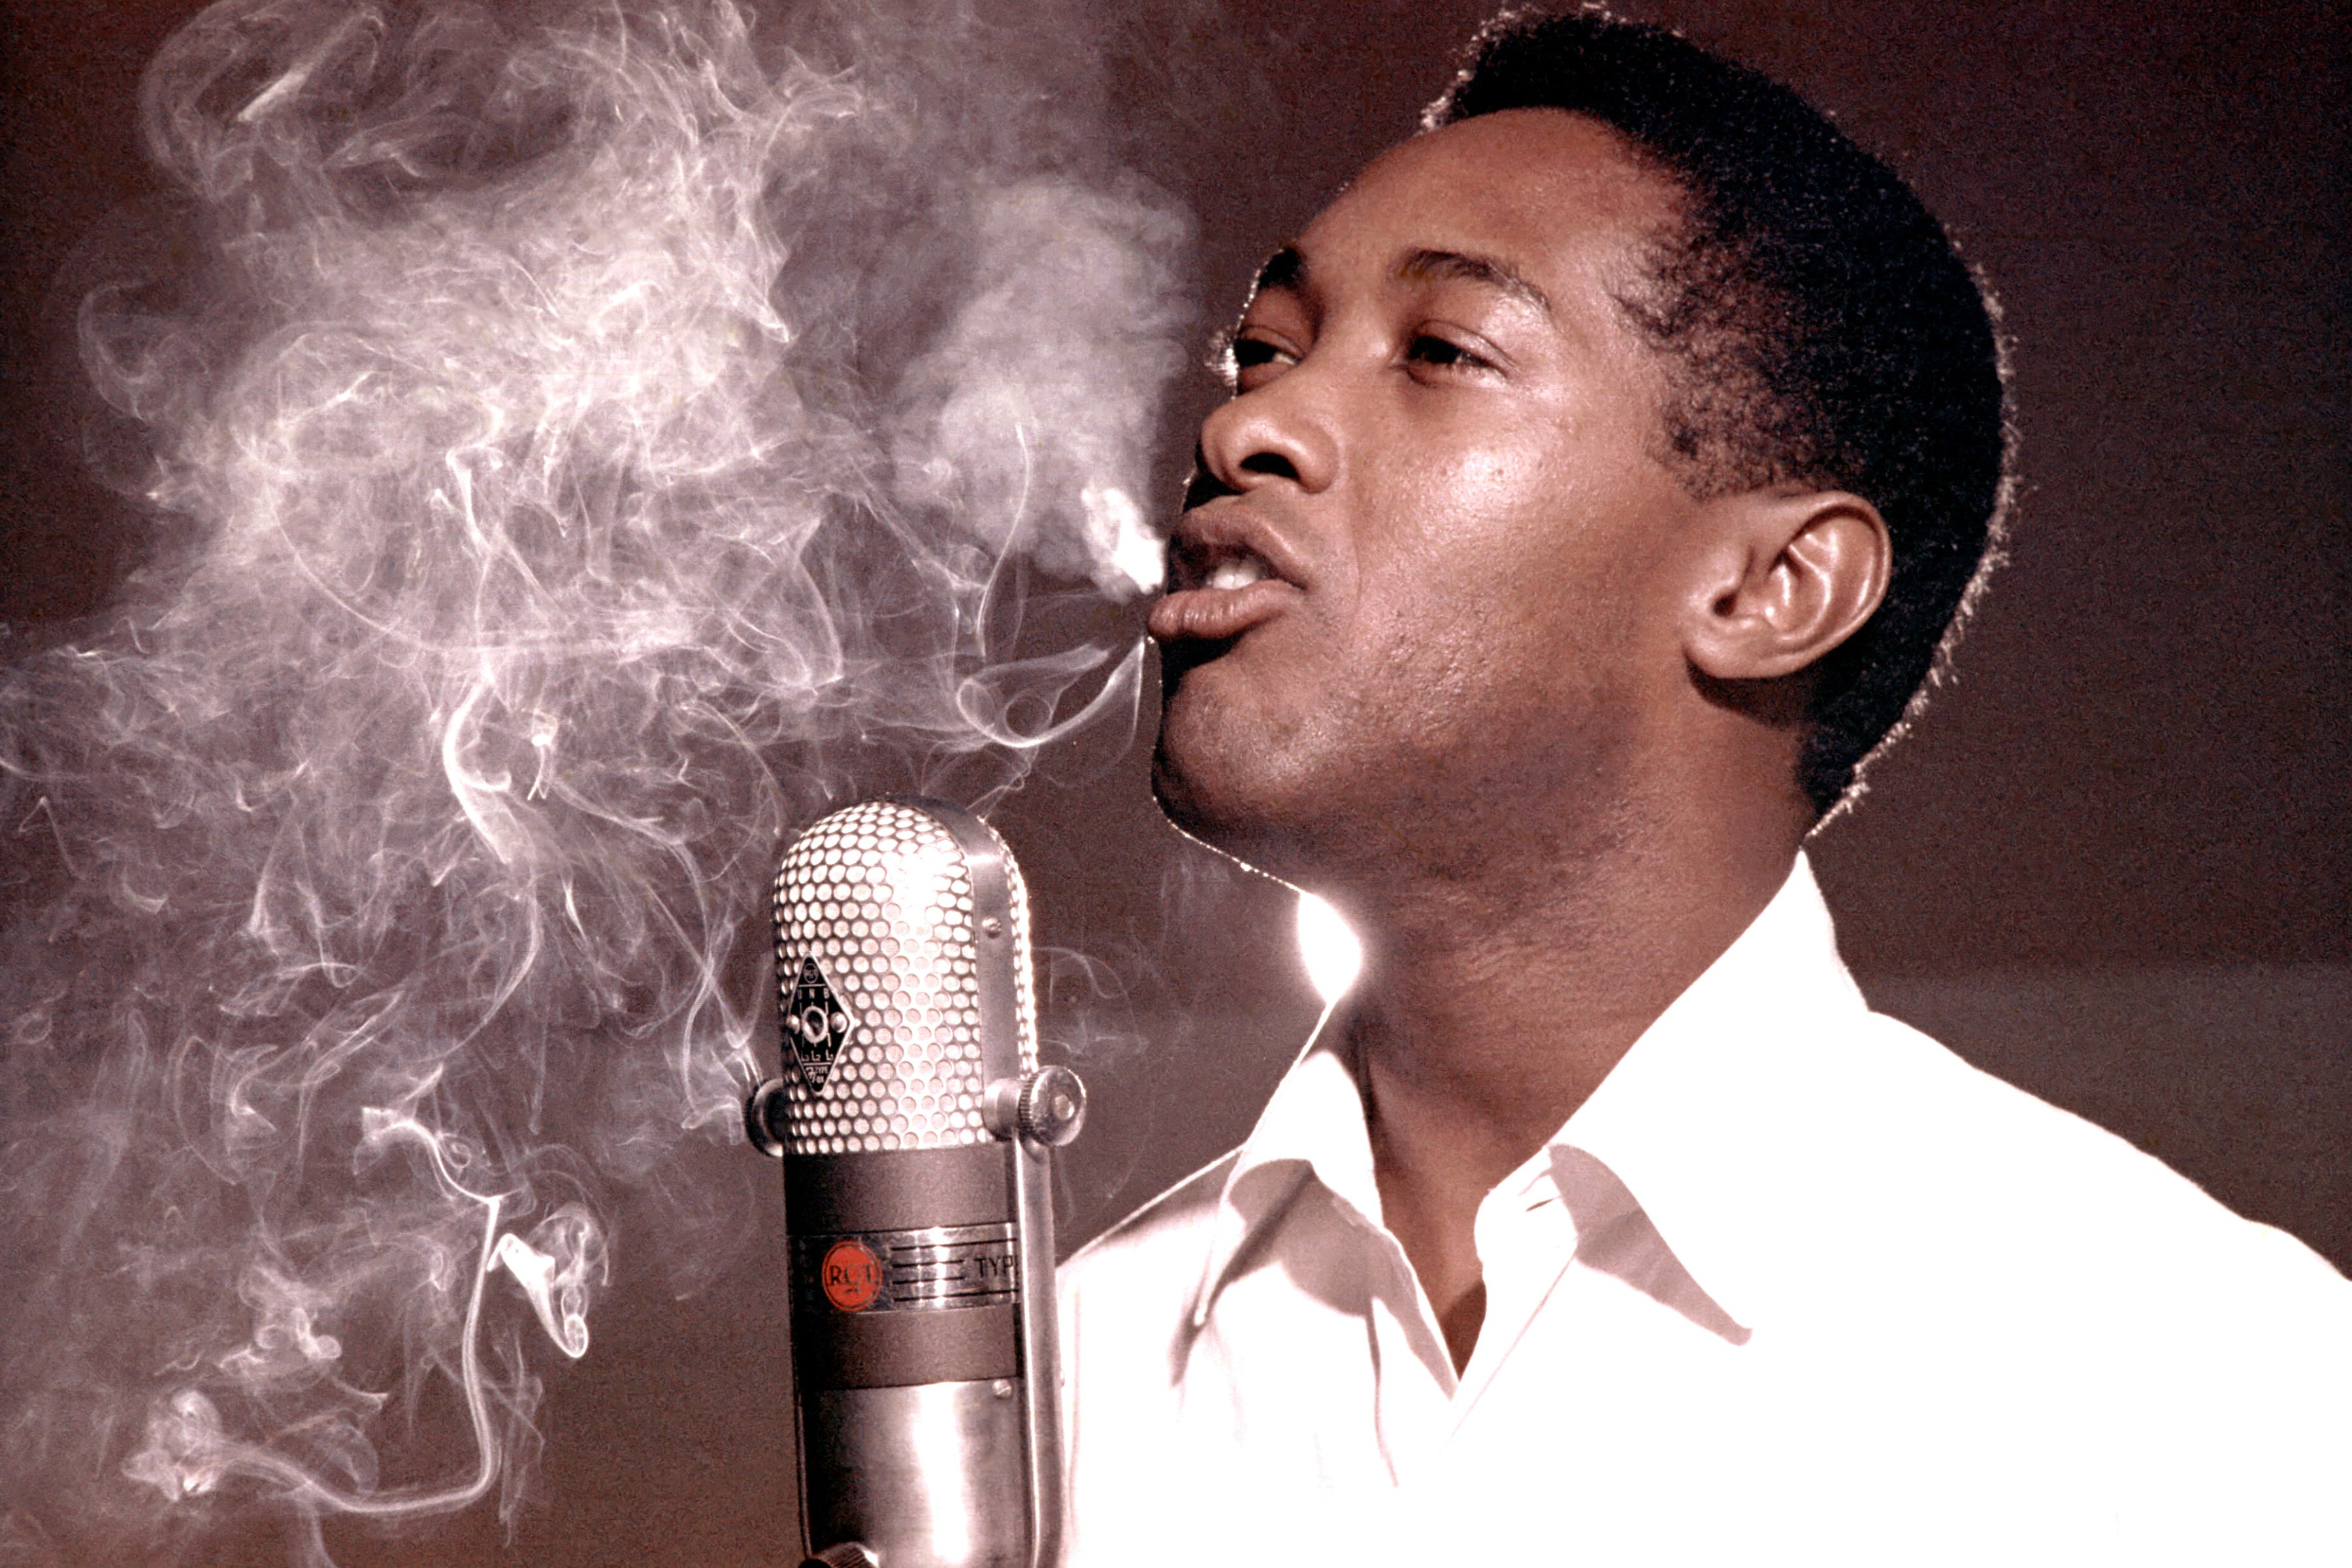 Sam Cooke pictured in New York City in 1958 | Source: Getty Images